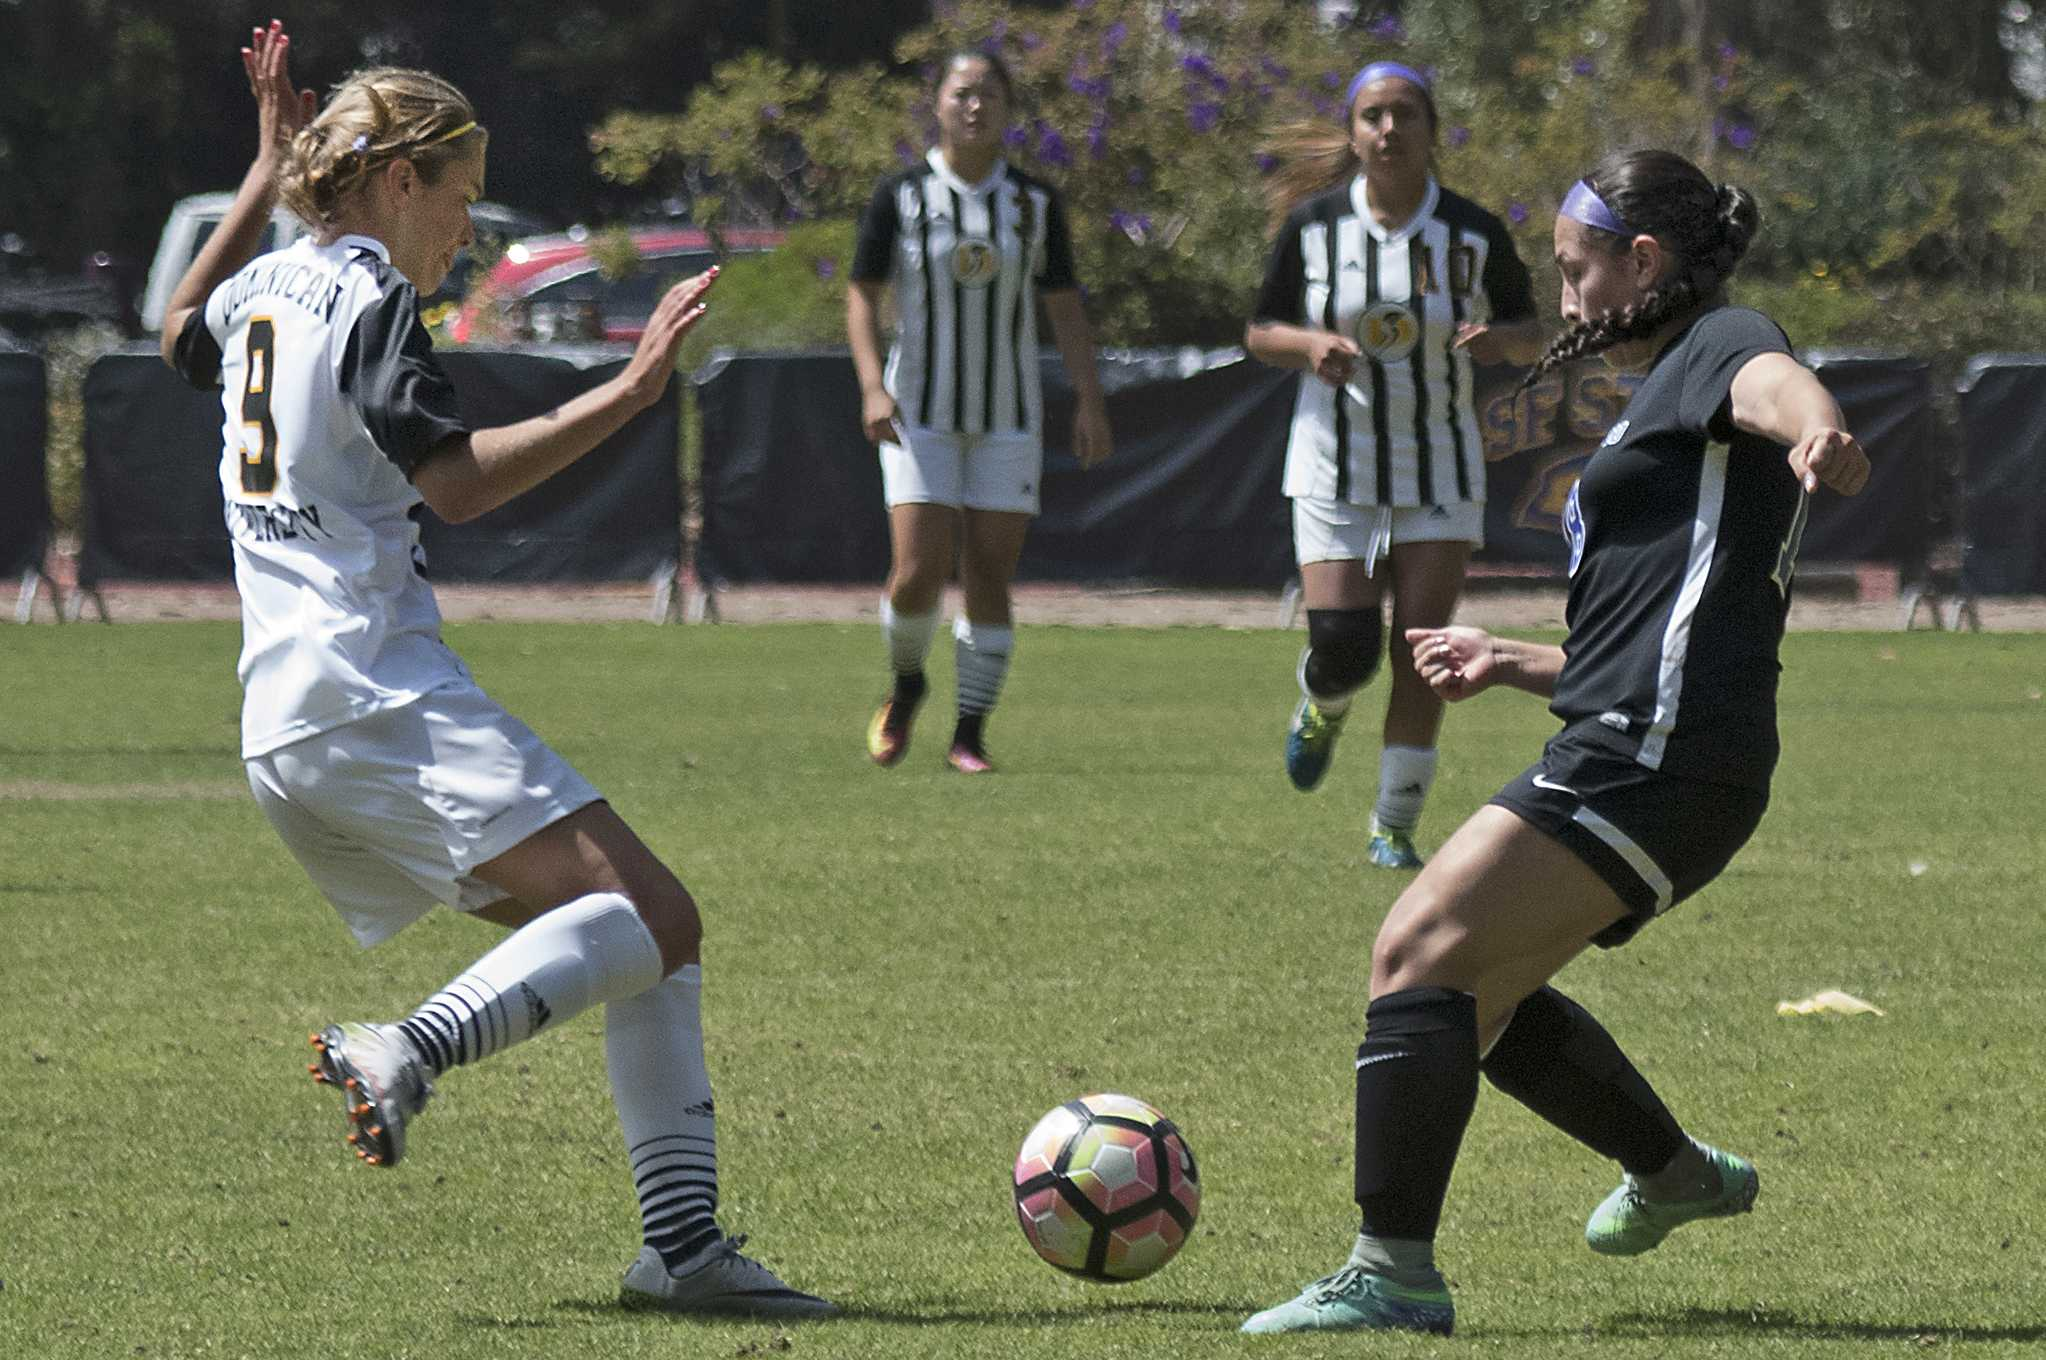 SF State Gators' freshman defender Valentina Riveros (18) prepares to clear the ball during their 2-2 double overtime tie against Dominican University of California at Cox Stadium on Sunday, Sept. 4, 2016.